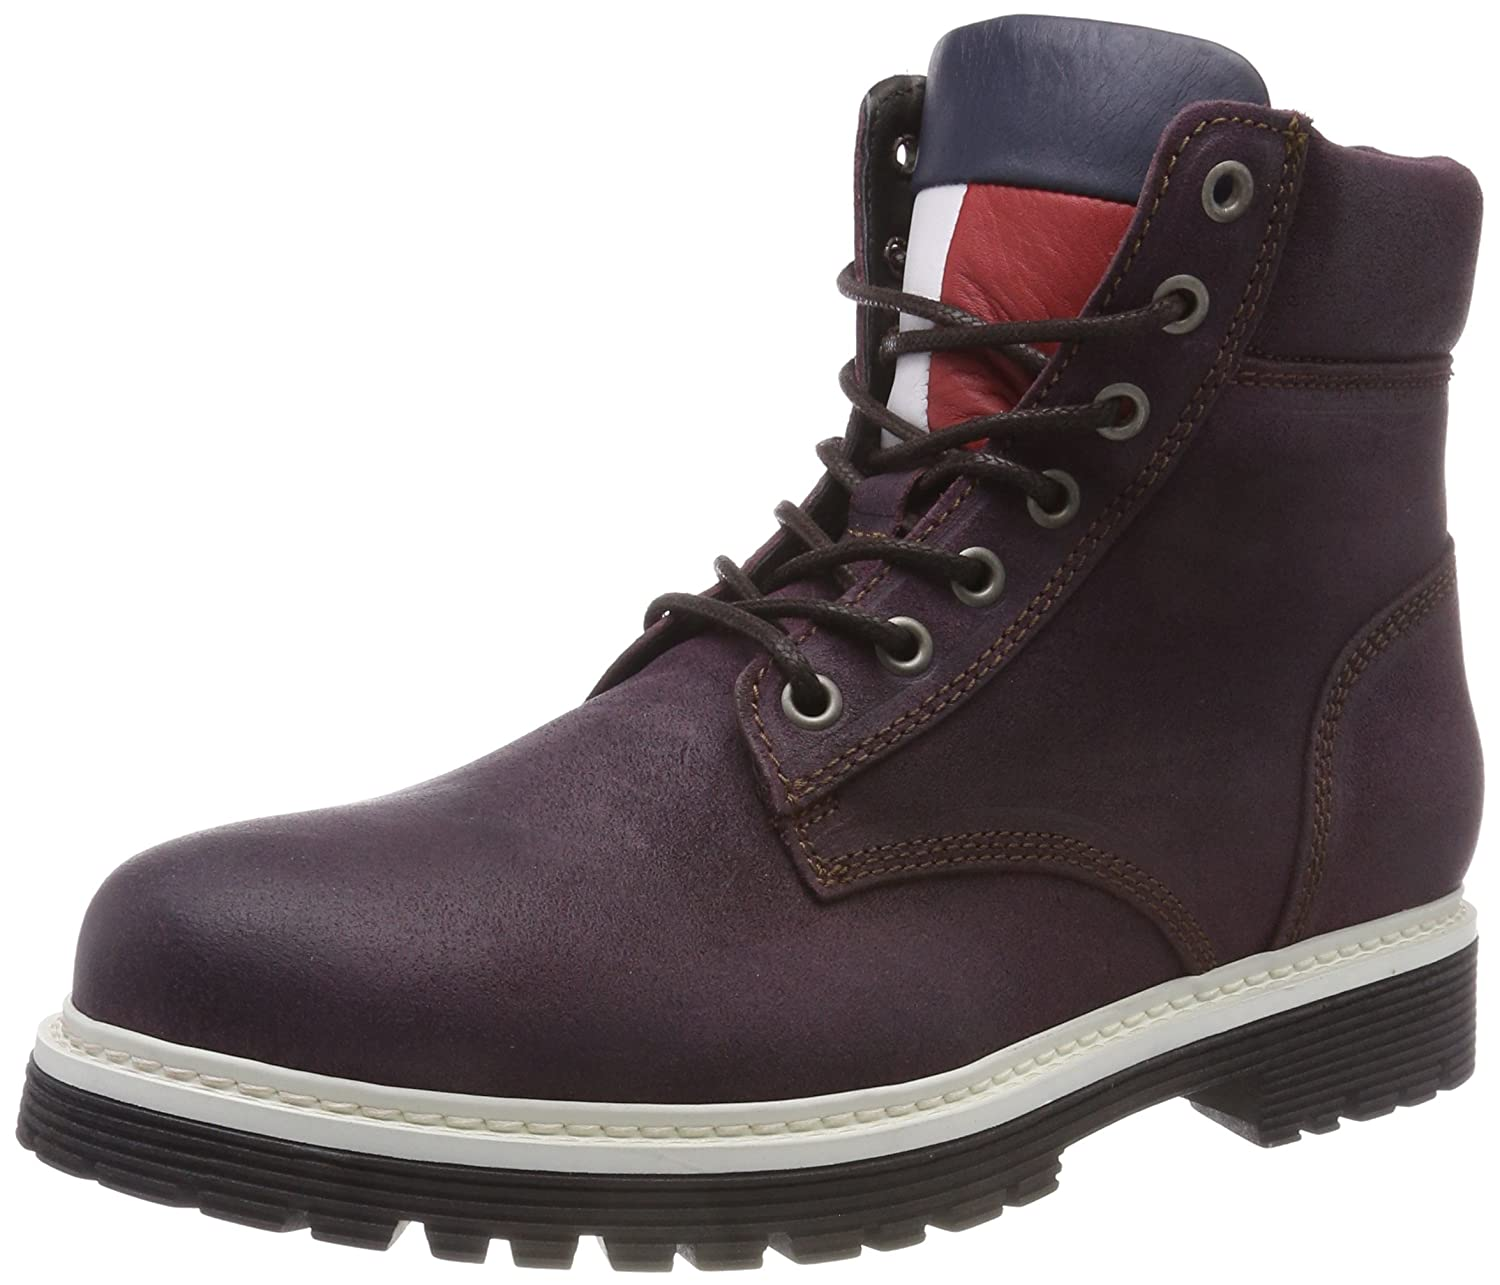 TALLA 44 EU. Tommy Jeans Iconic Suede Boot, Botas Militar para Hombre